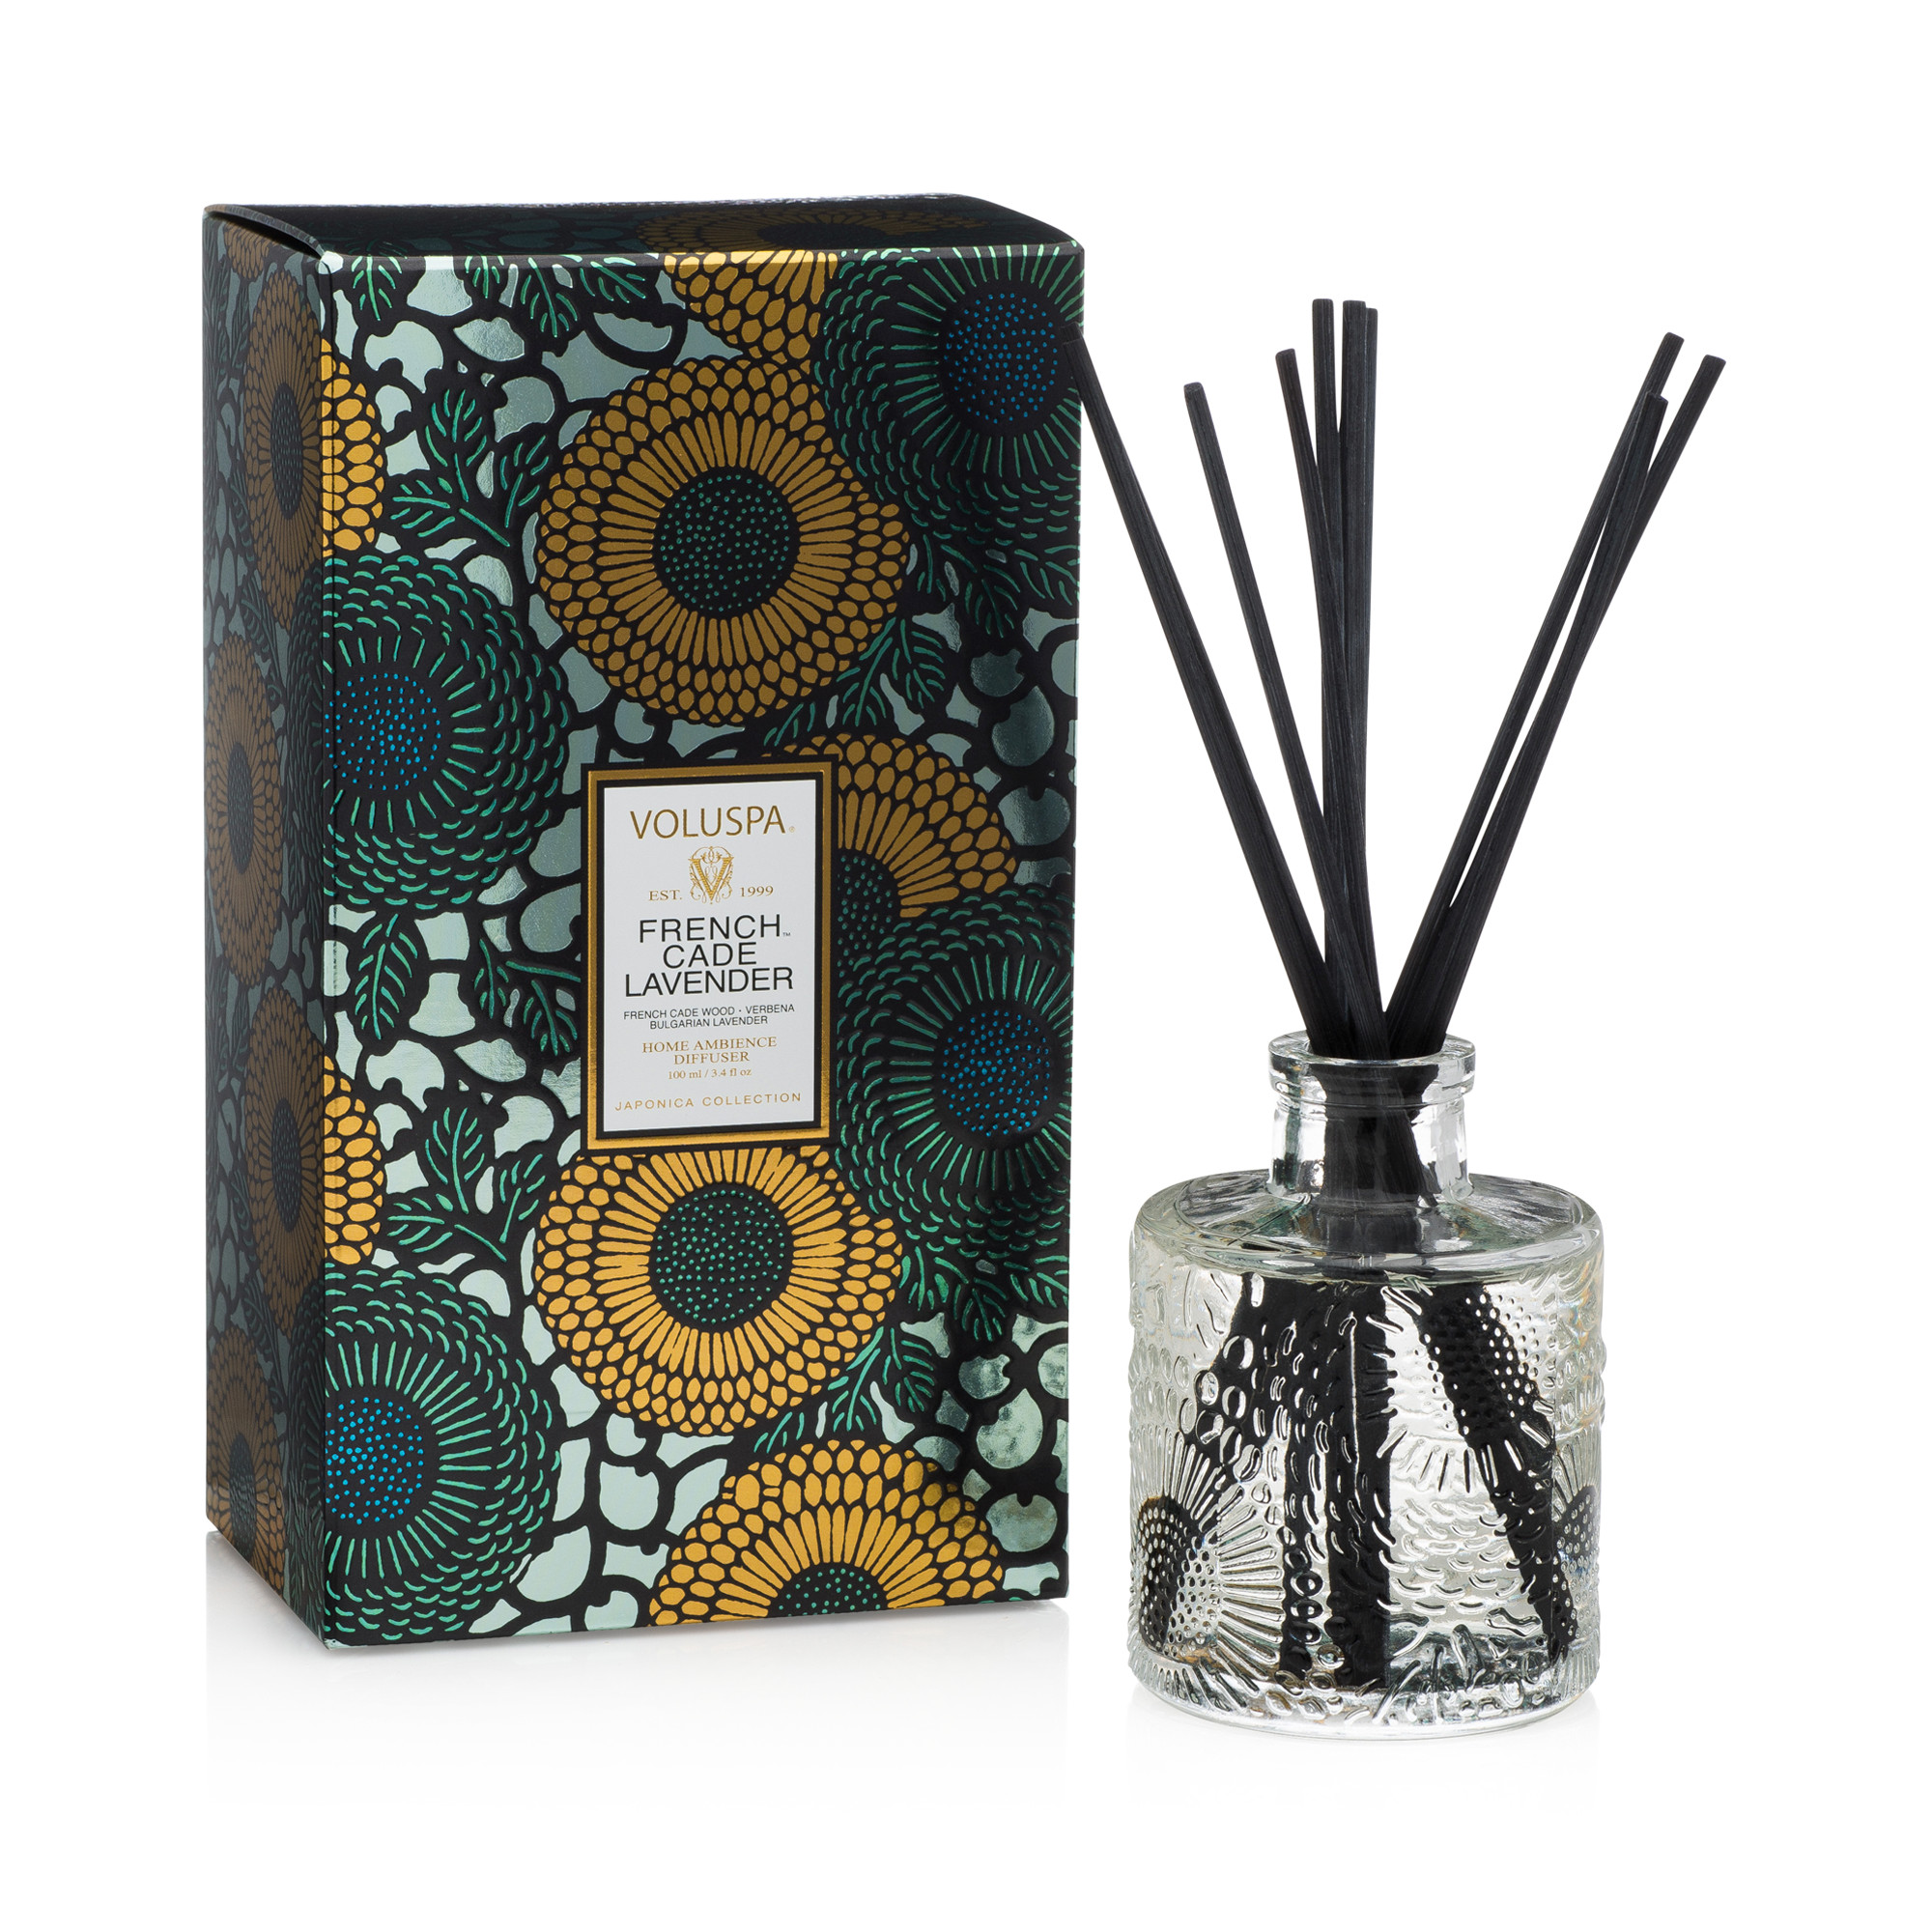 Voluspa Japonica French Cade & Lavender Home Ambience Diffuser at Bloomingdale's, $24